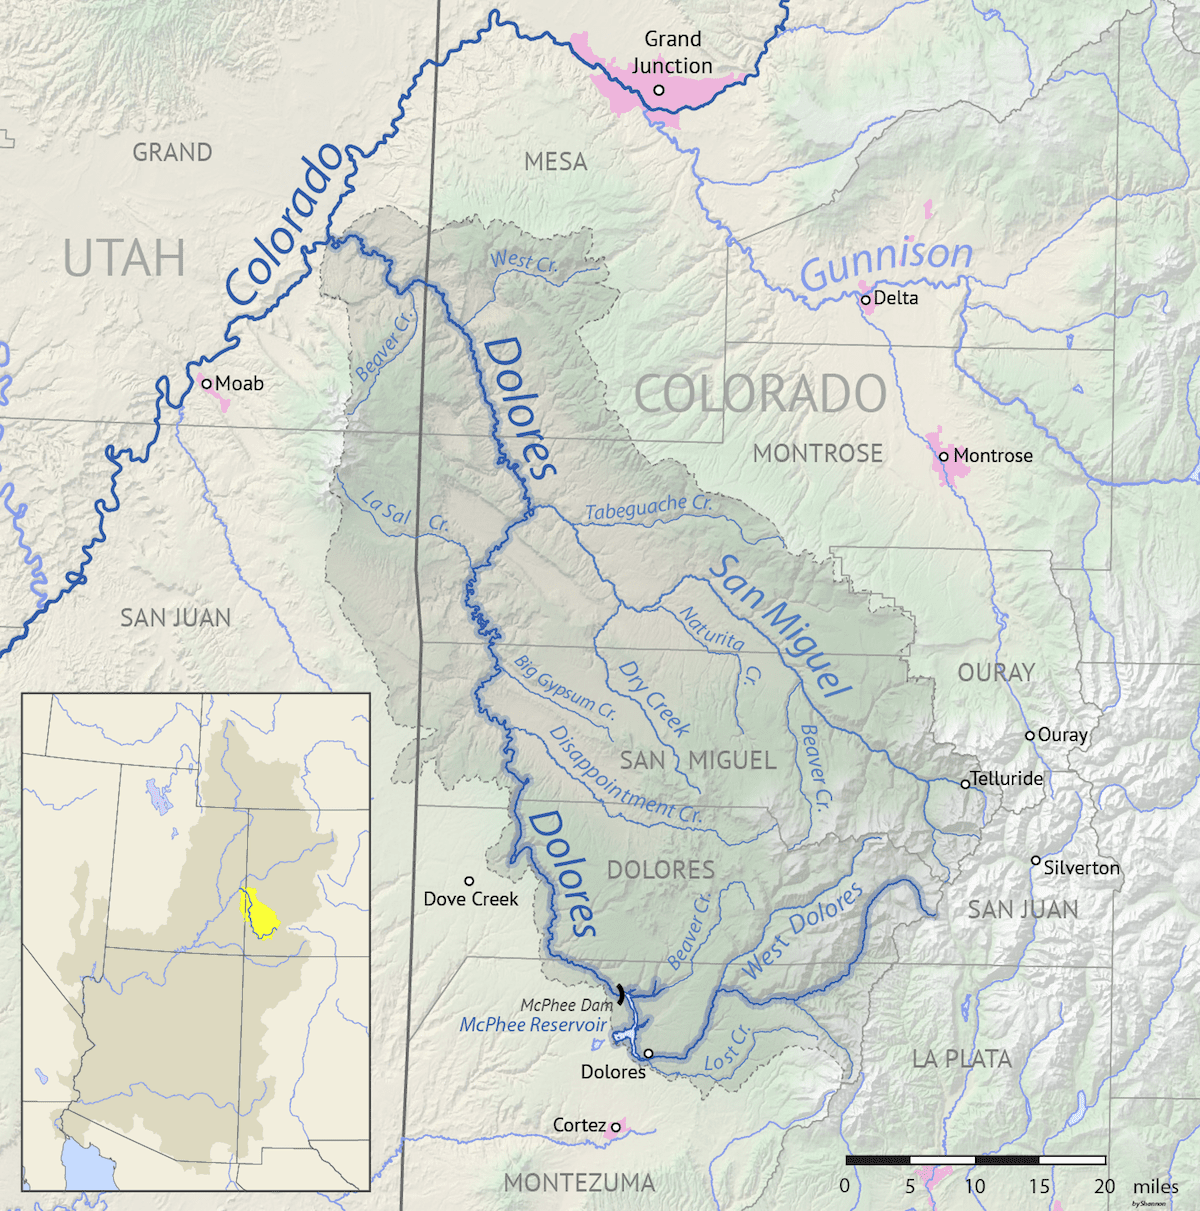 Image of the Dolores River Basin Map